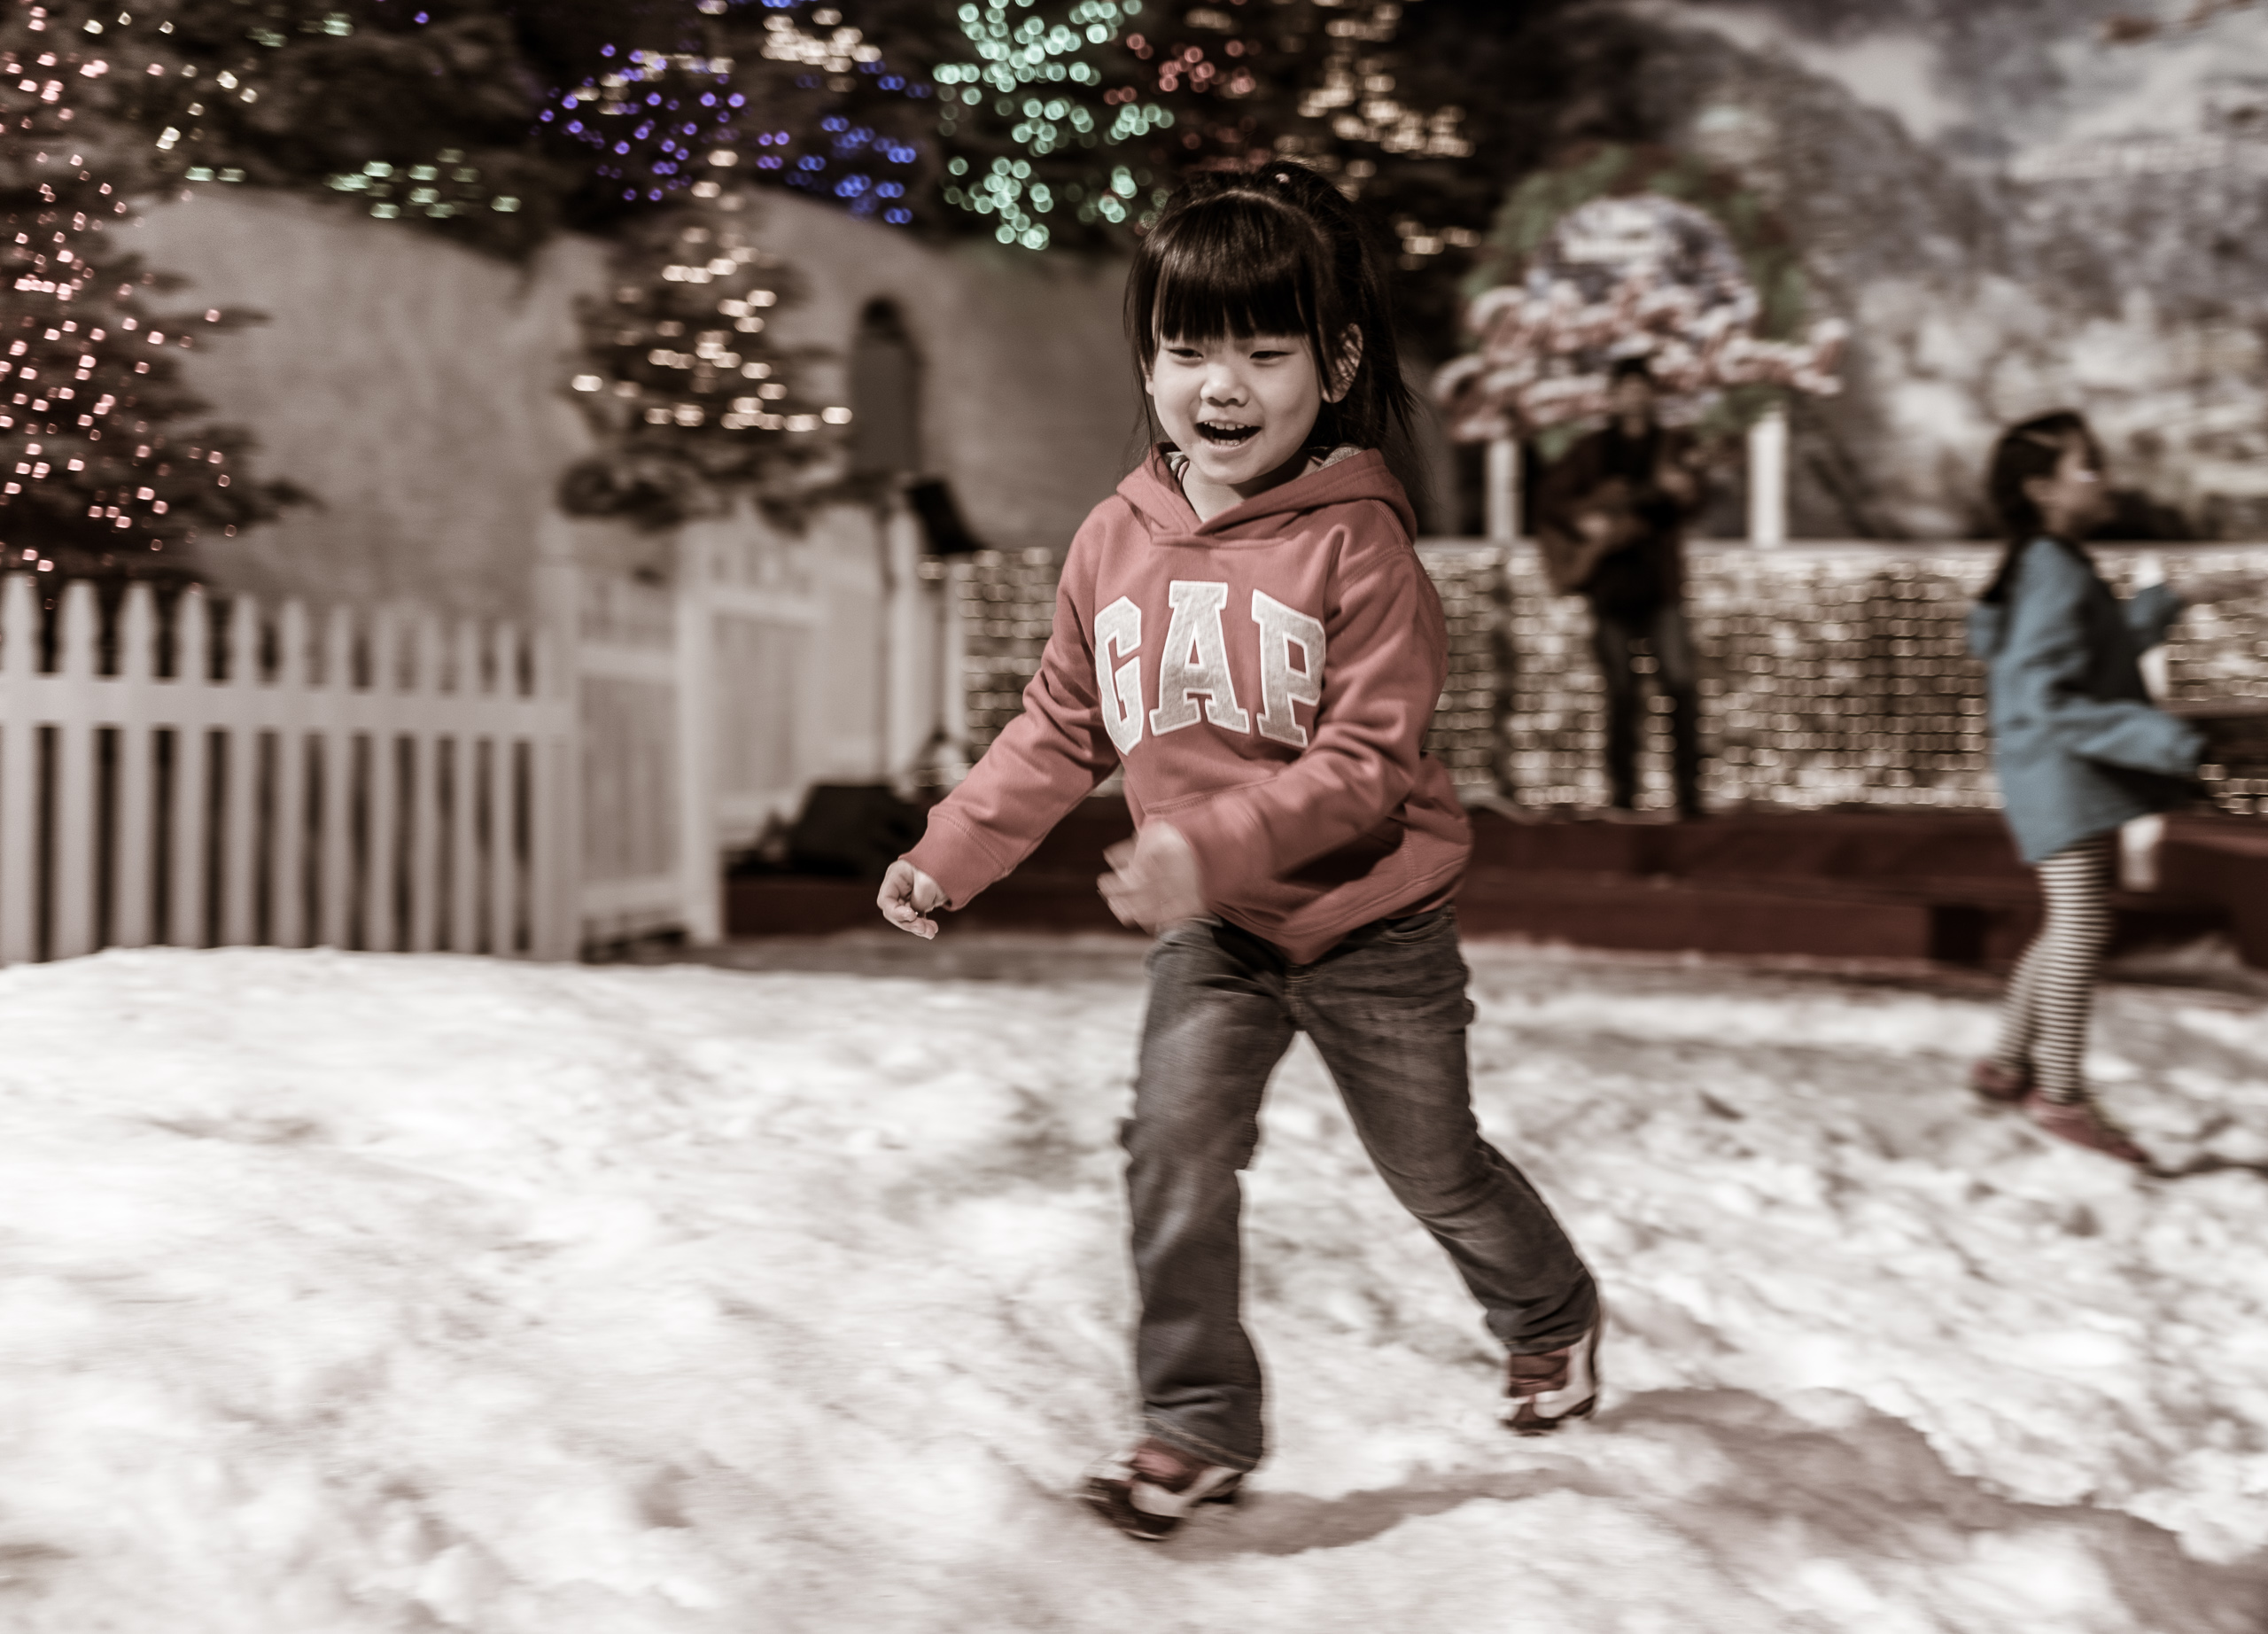 Running in the snow @ L. Ron Hubbard's Winter Wonderland